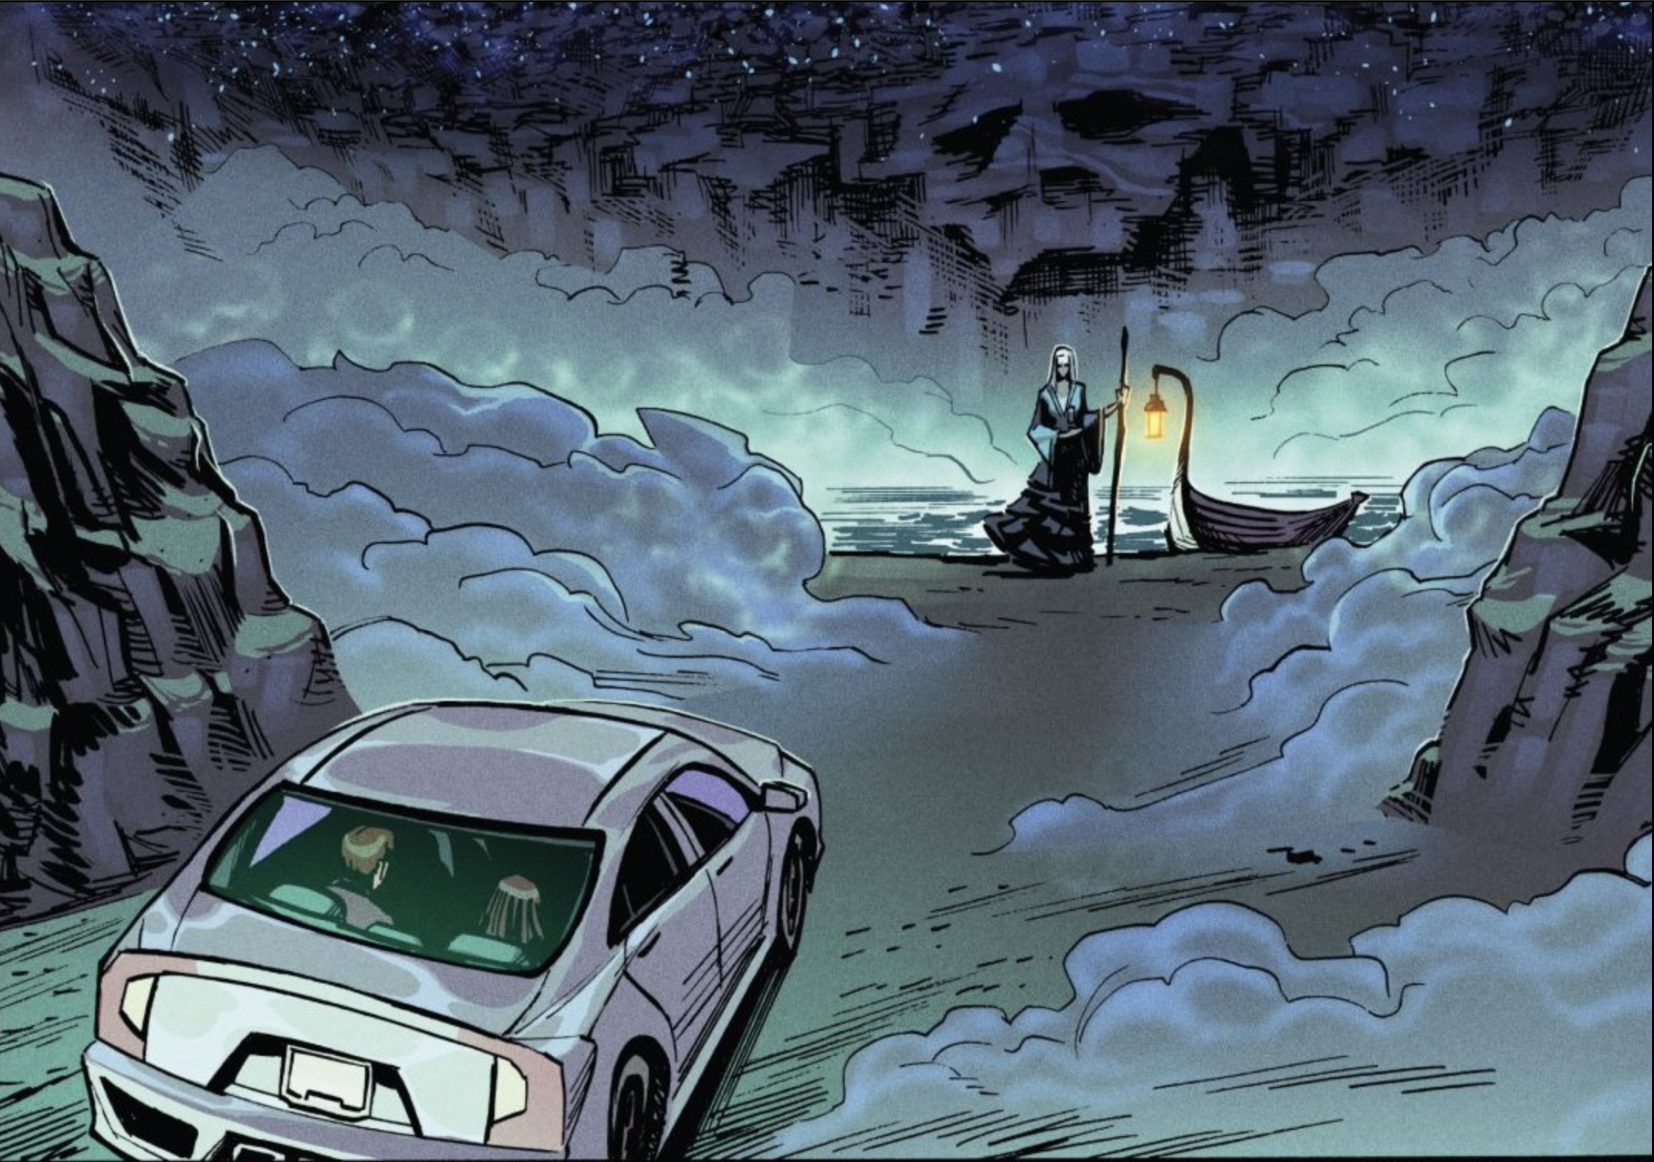 Janice's car approaching a reaper-like figure with a gondola in purgatory.